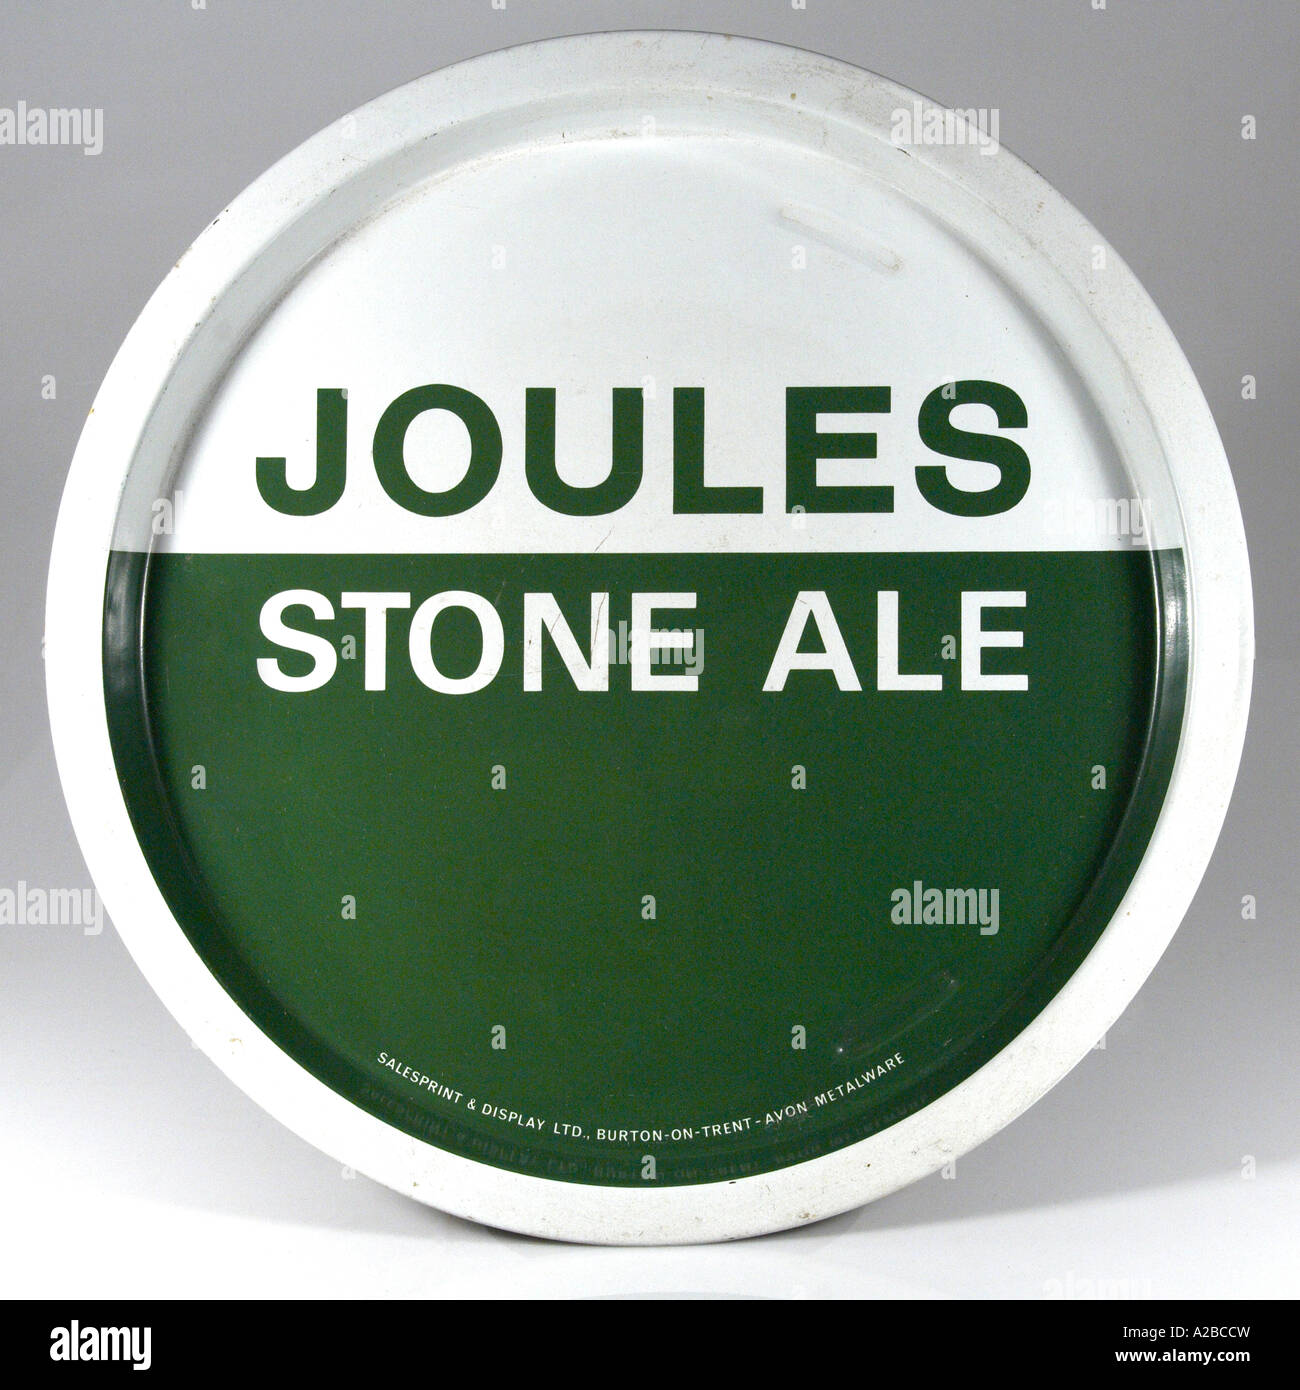 Joules Stone Ale Tray 1970s for Editorial Use Only - Stock Image